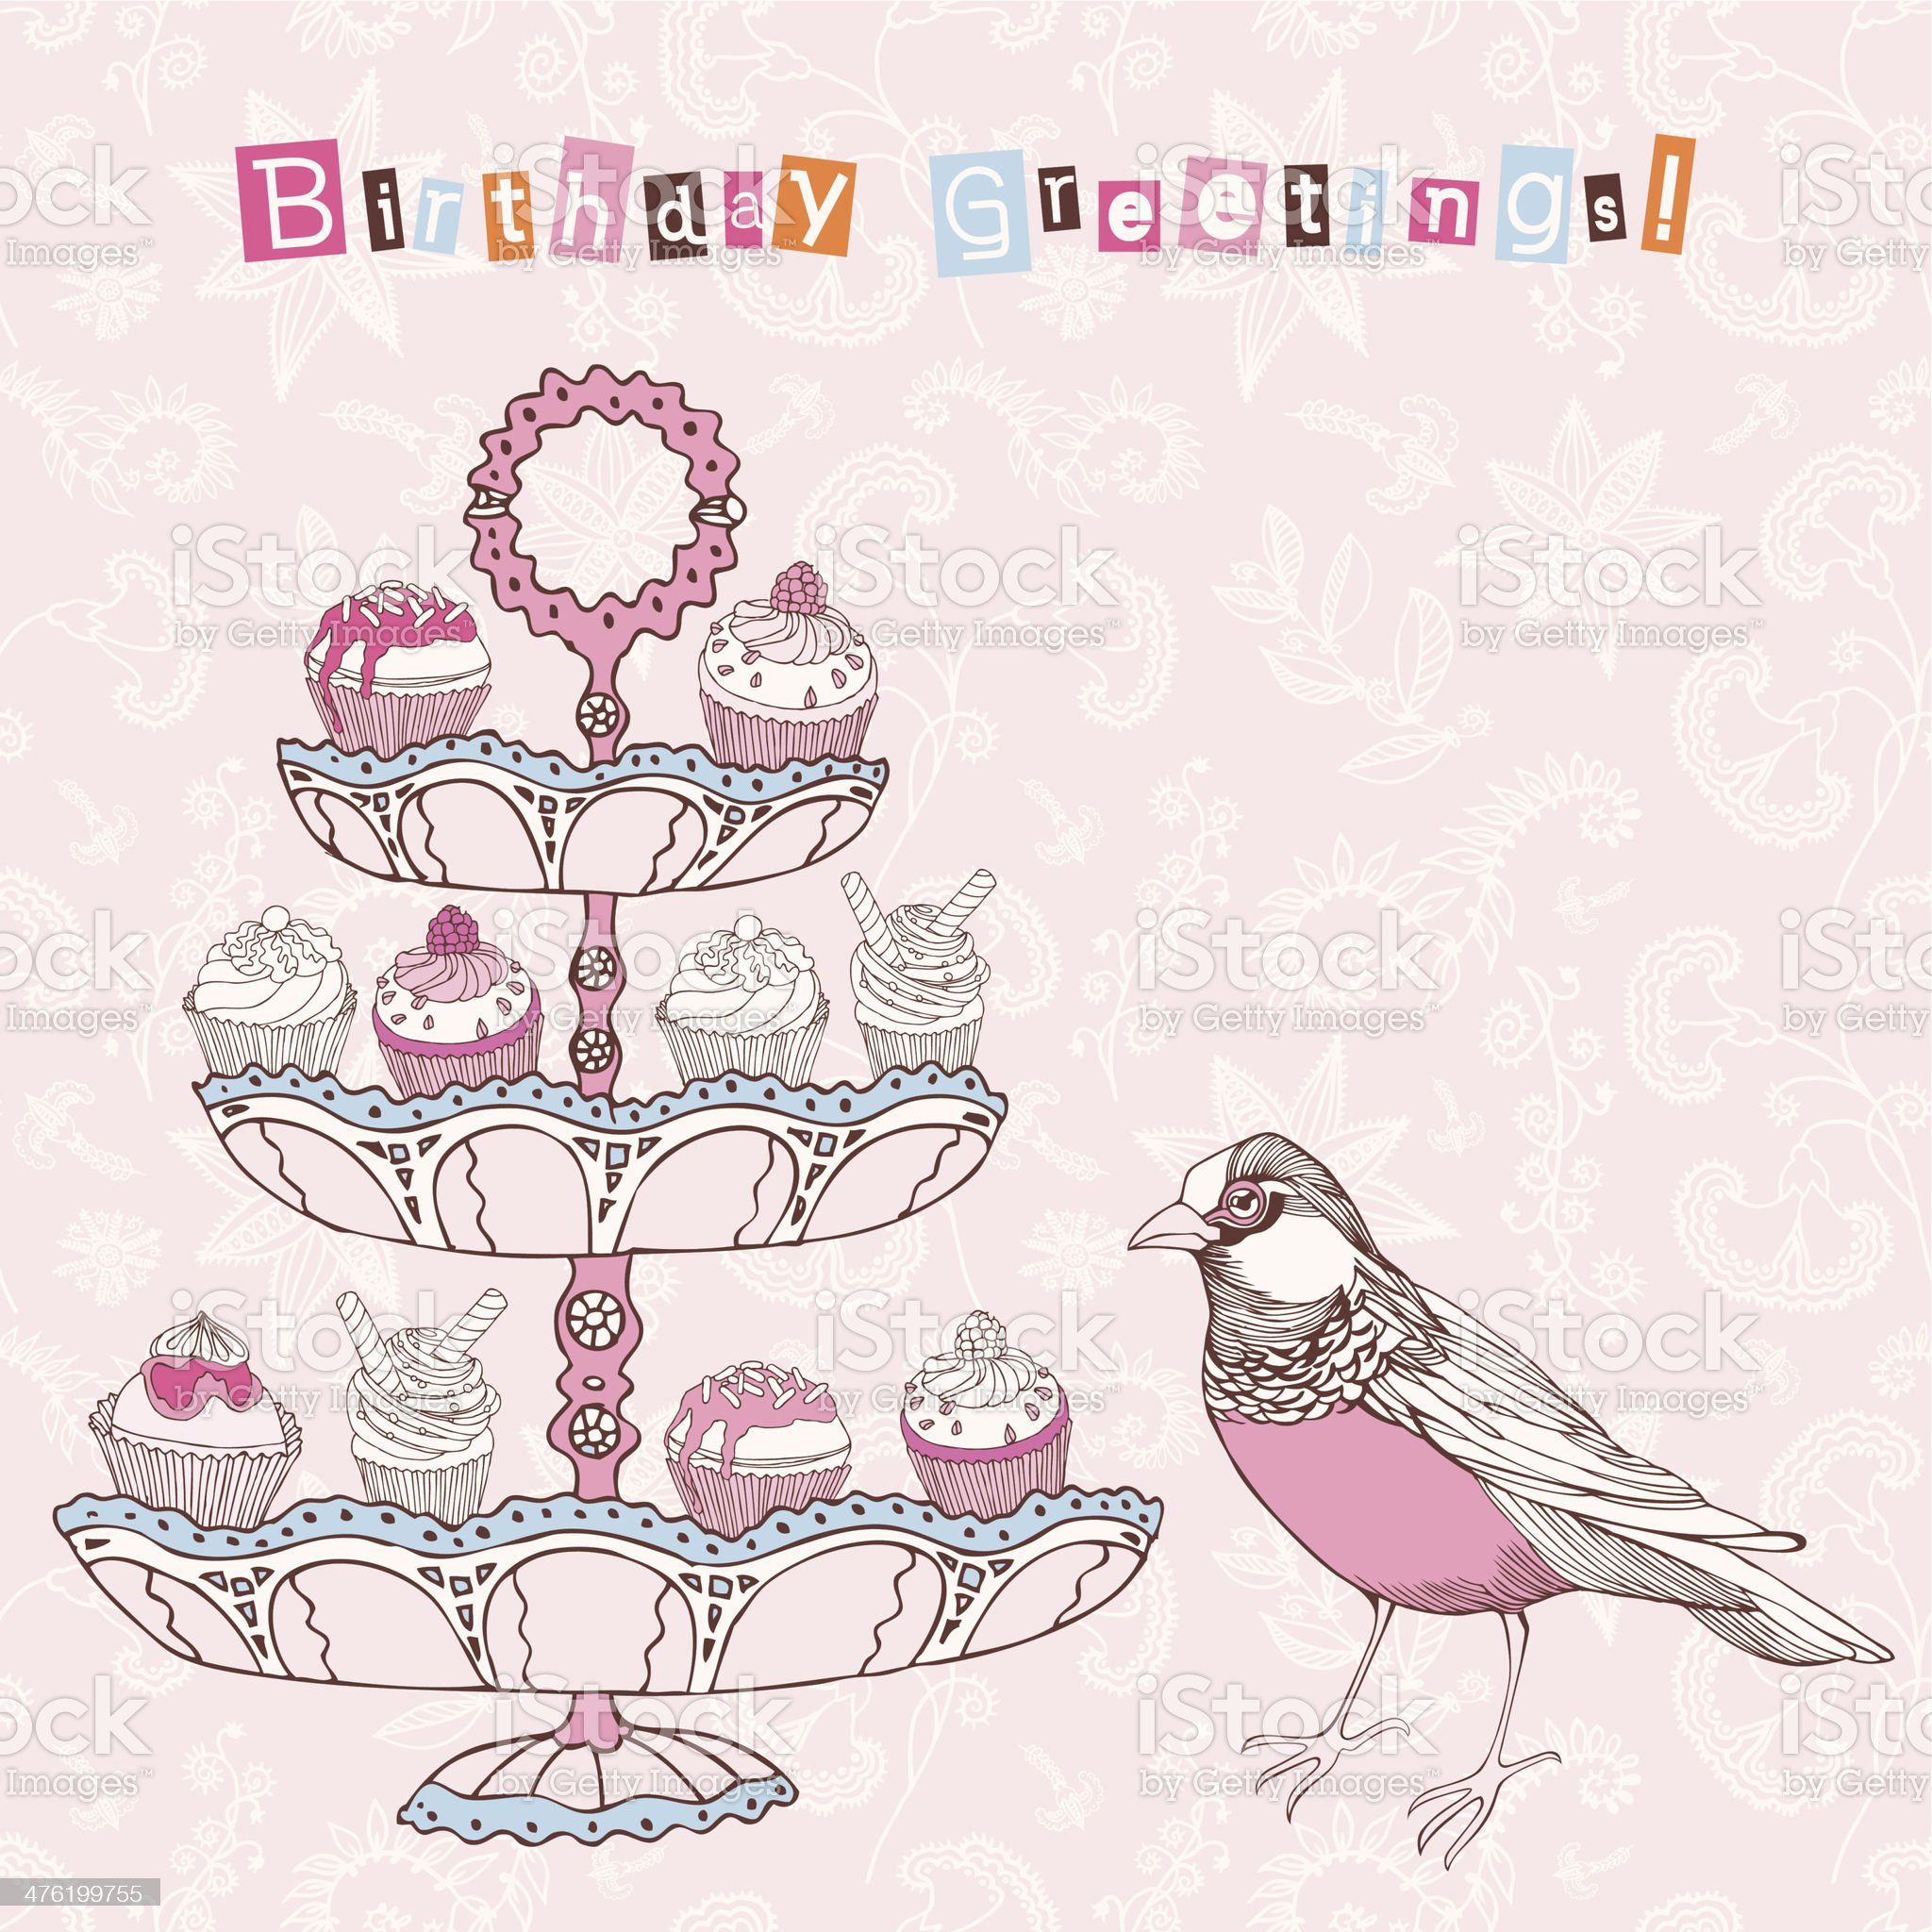 Birthday card with bird and cupcakes. royalty-free stock vector art